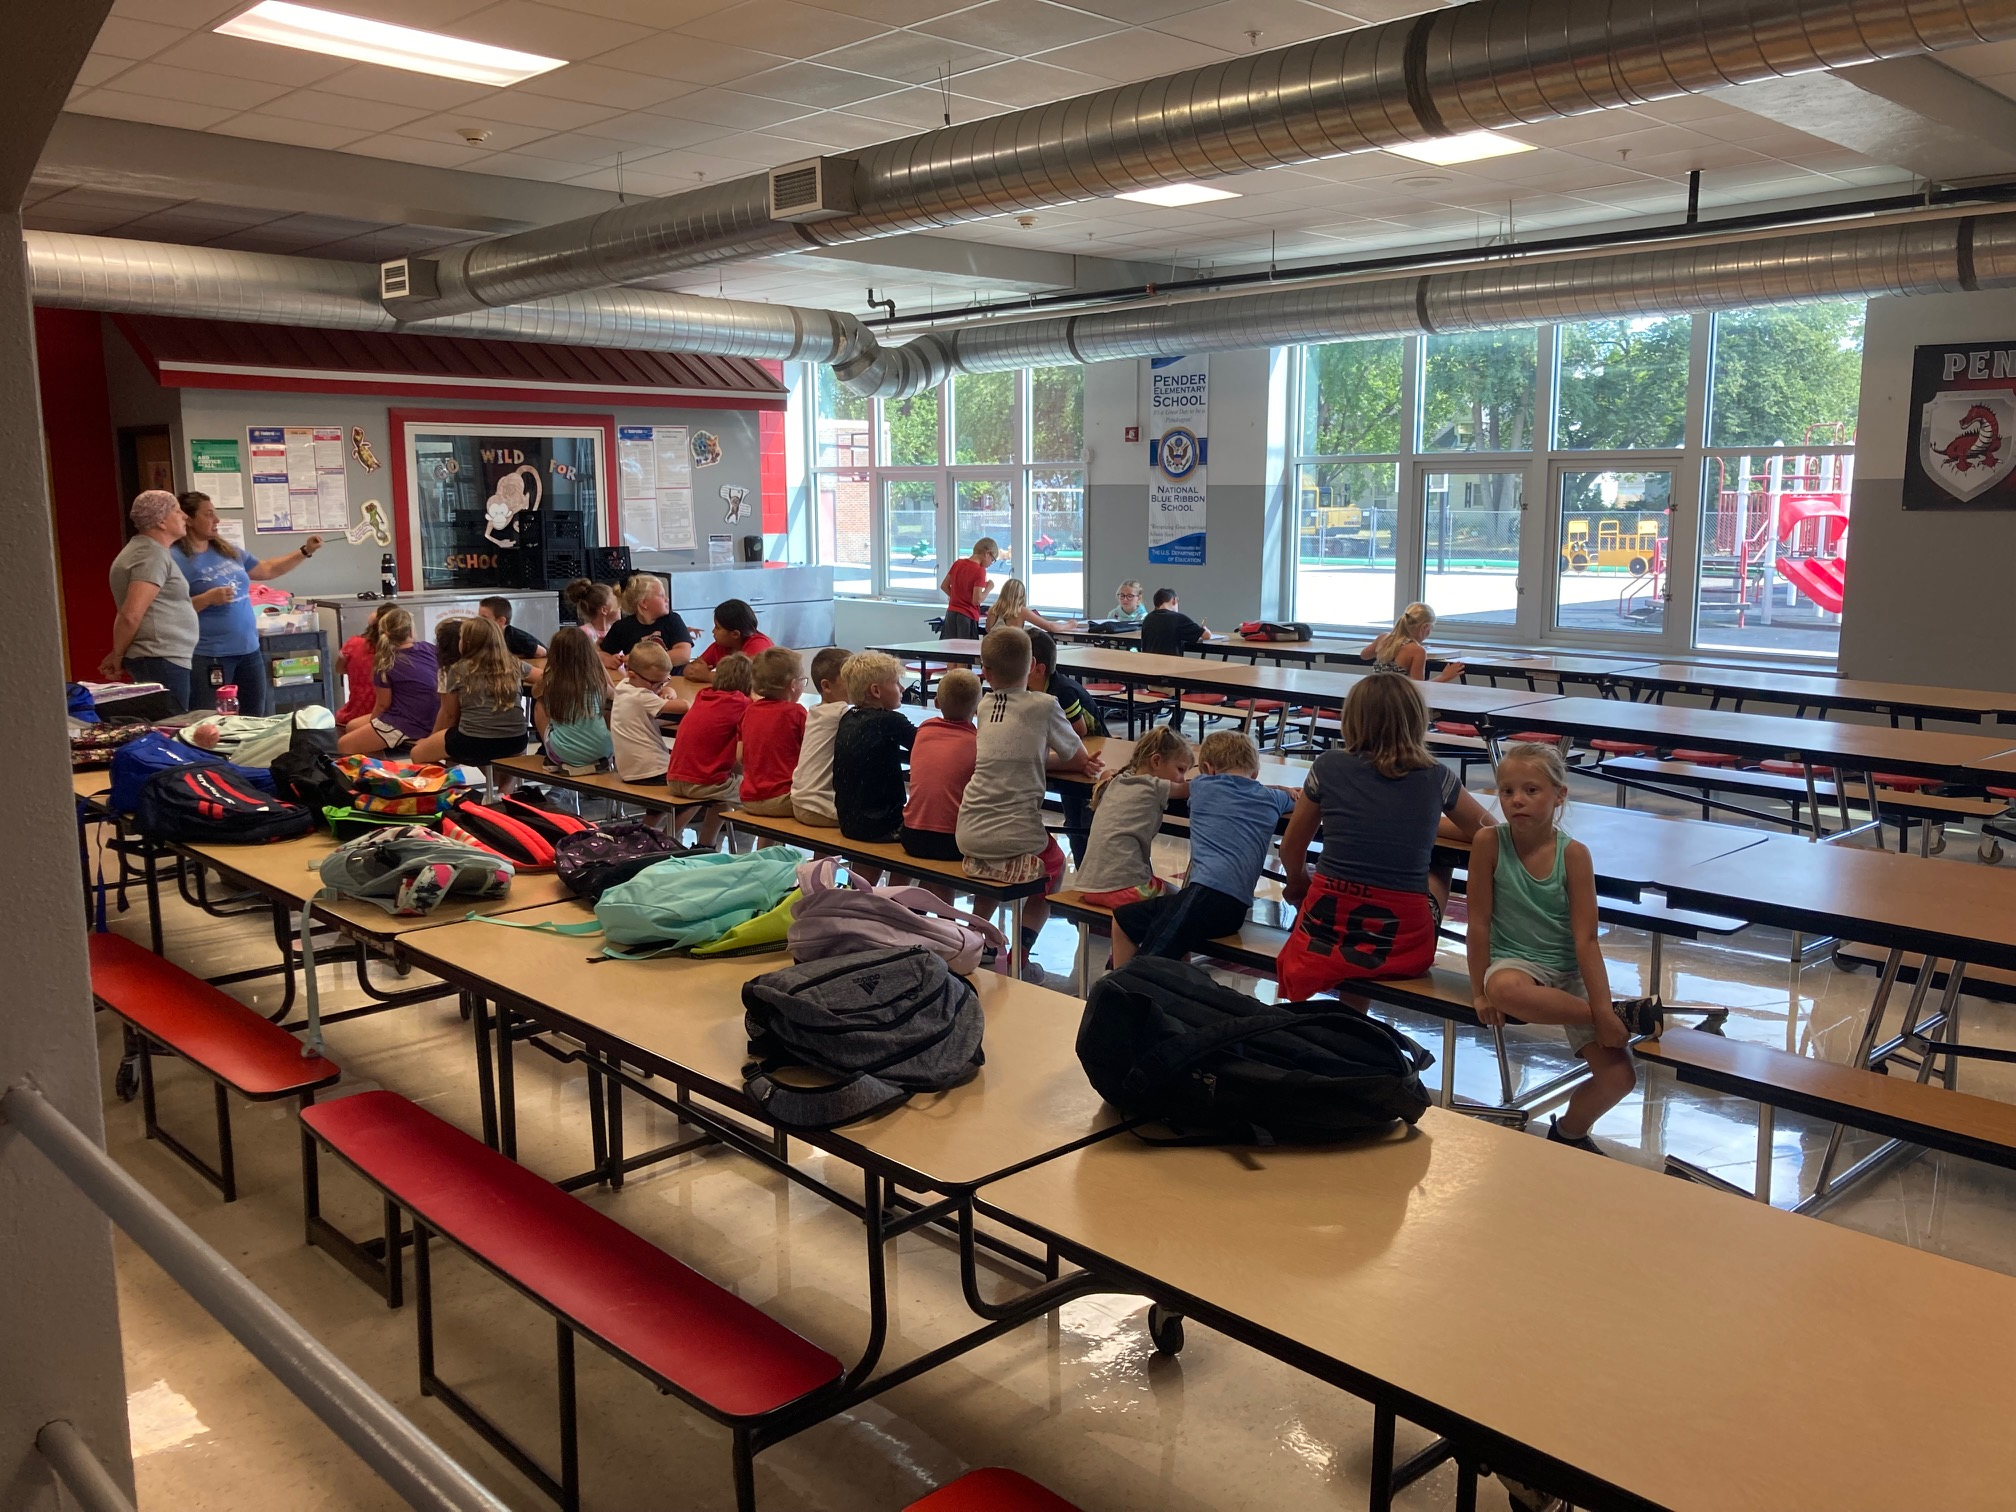 more kids sitting at lunch tables while being supervised by adults nearby